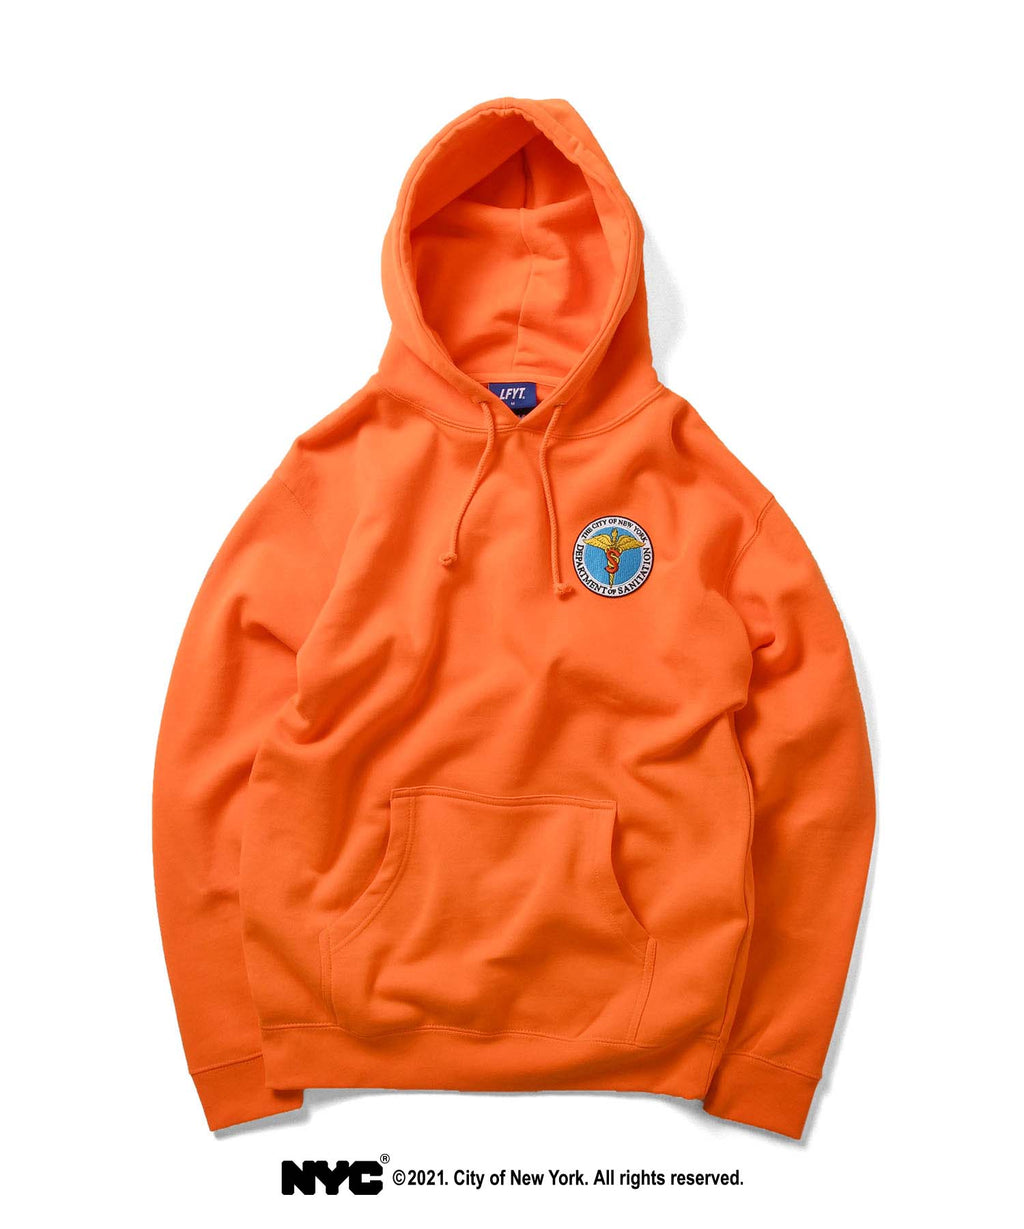 LFYT X DSNY COMMUNITY SERVICES PULLOVER HOODIE LS210503 ORANGE